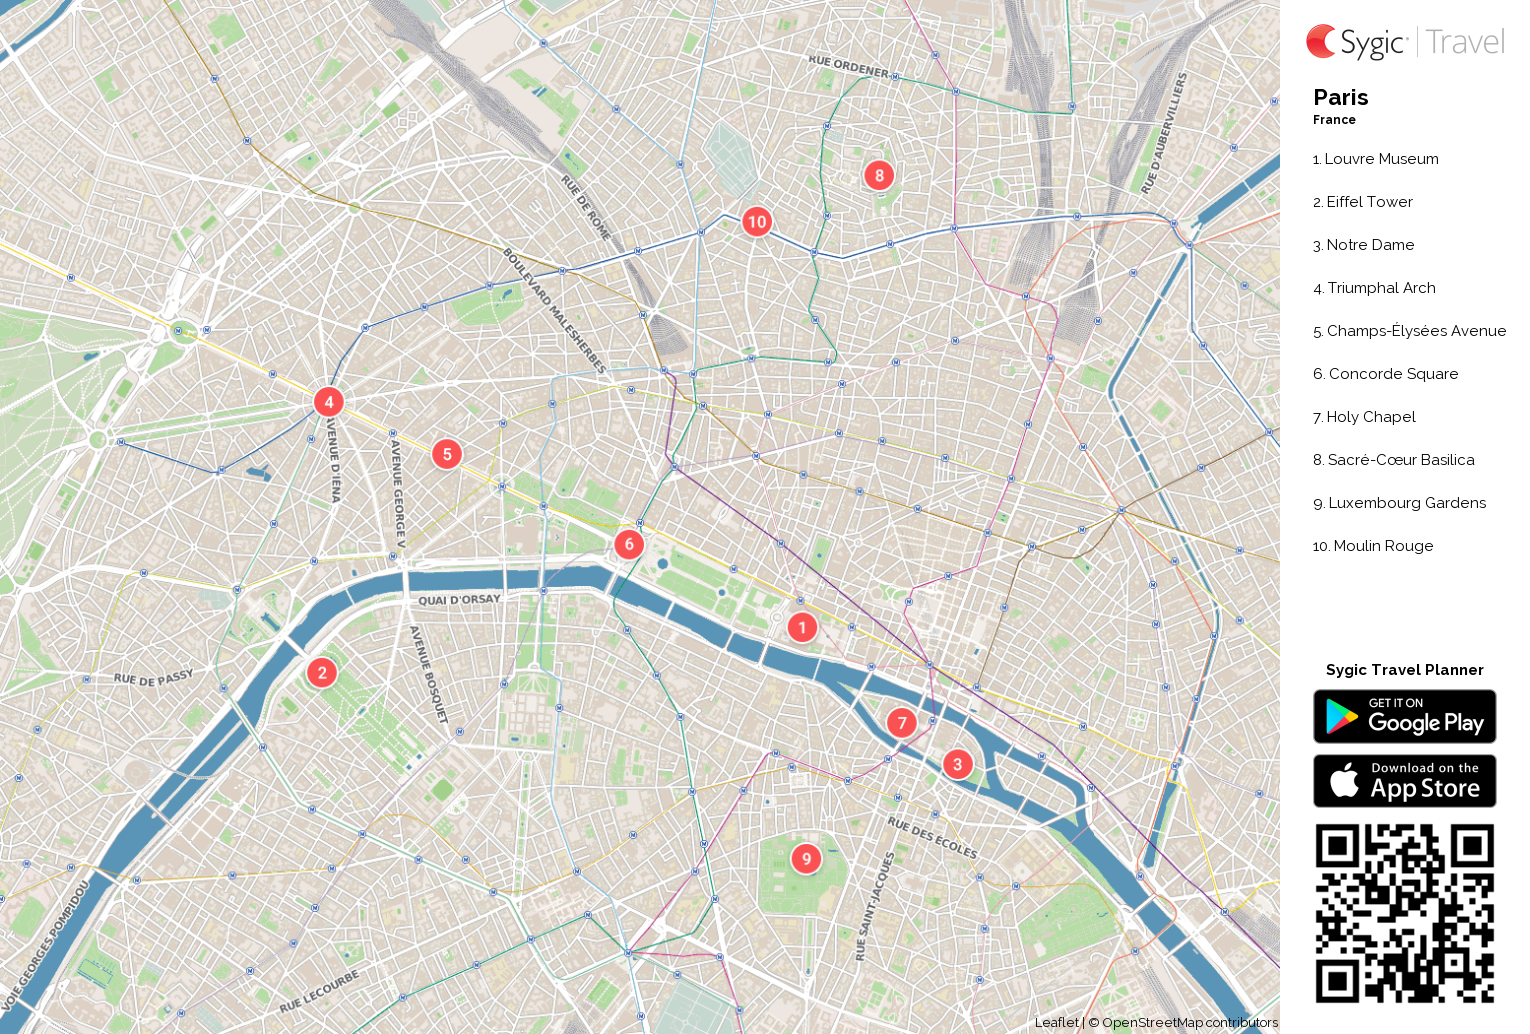 Paris Printable Tourist Map | Sygic Travel